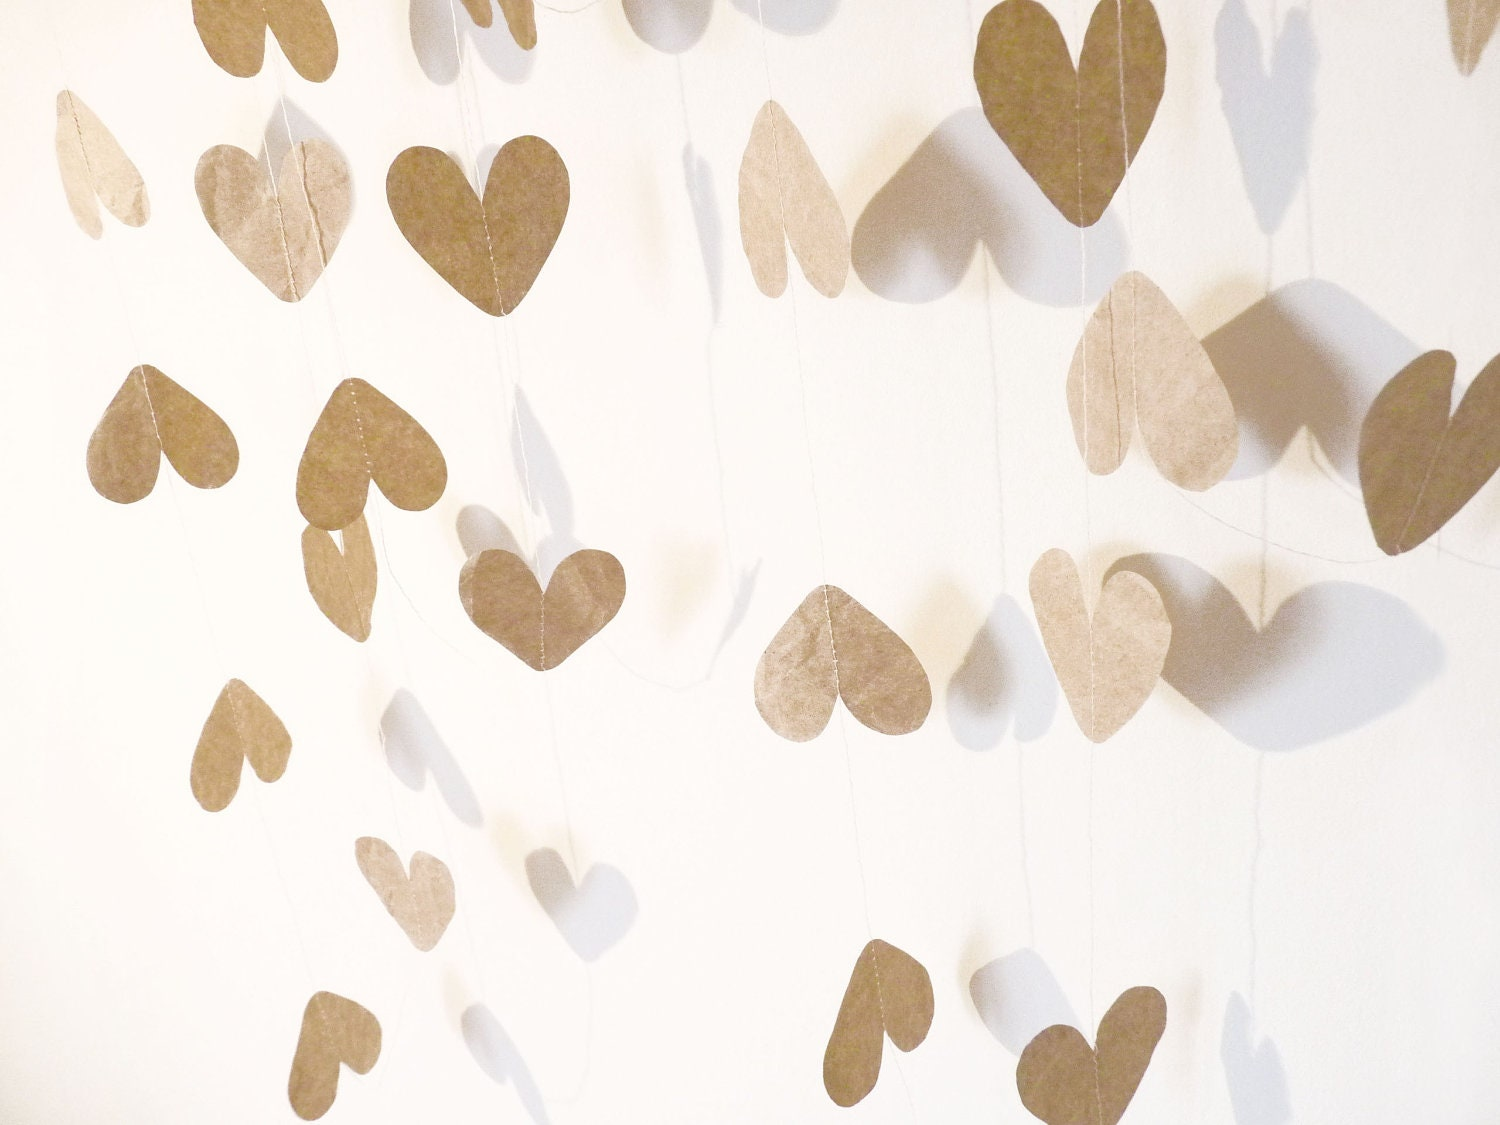 Recycled Brown Paper Heart Garland / First Anniversary Gift / Contemporary Christmas Decoration (Approx 2.68 meters / 8.7 feet) - HandmadebyKATuck